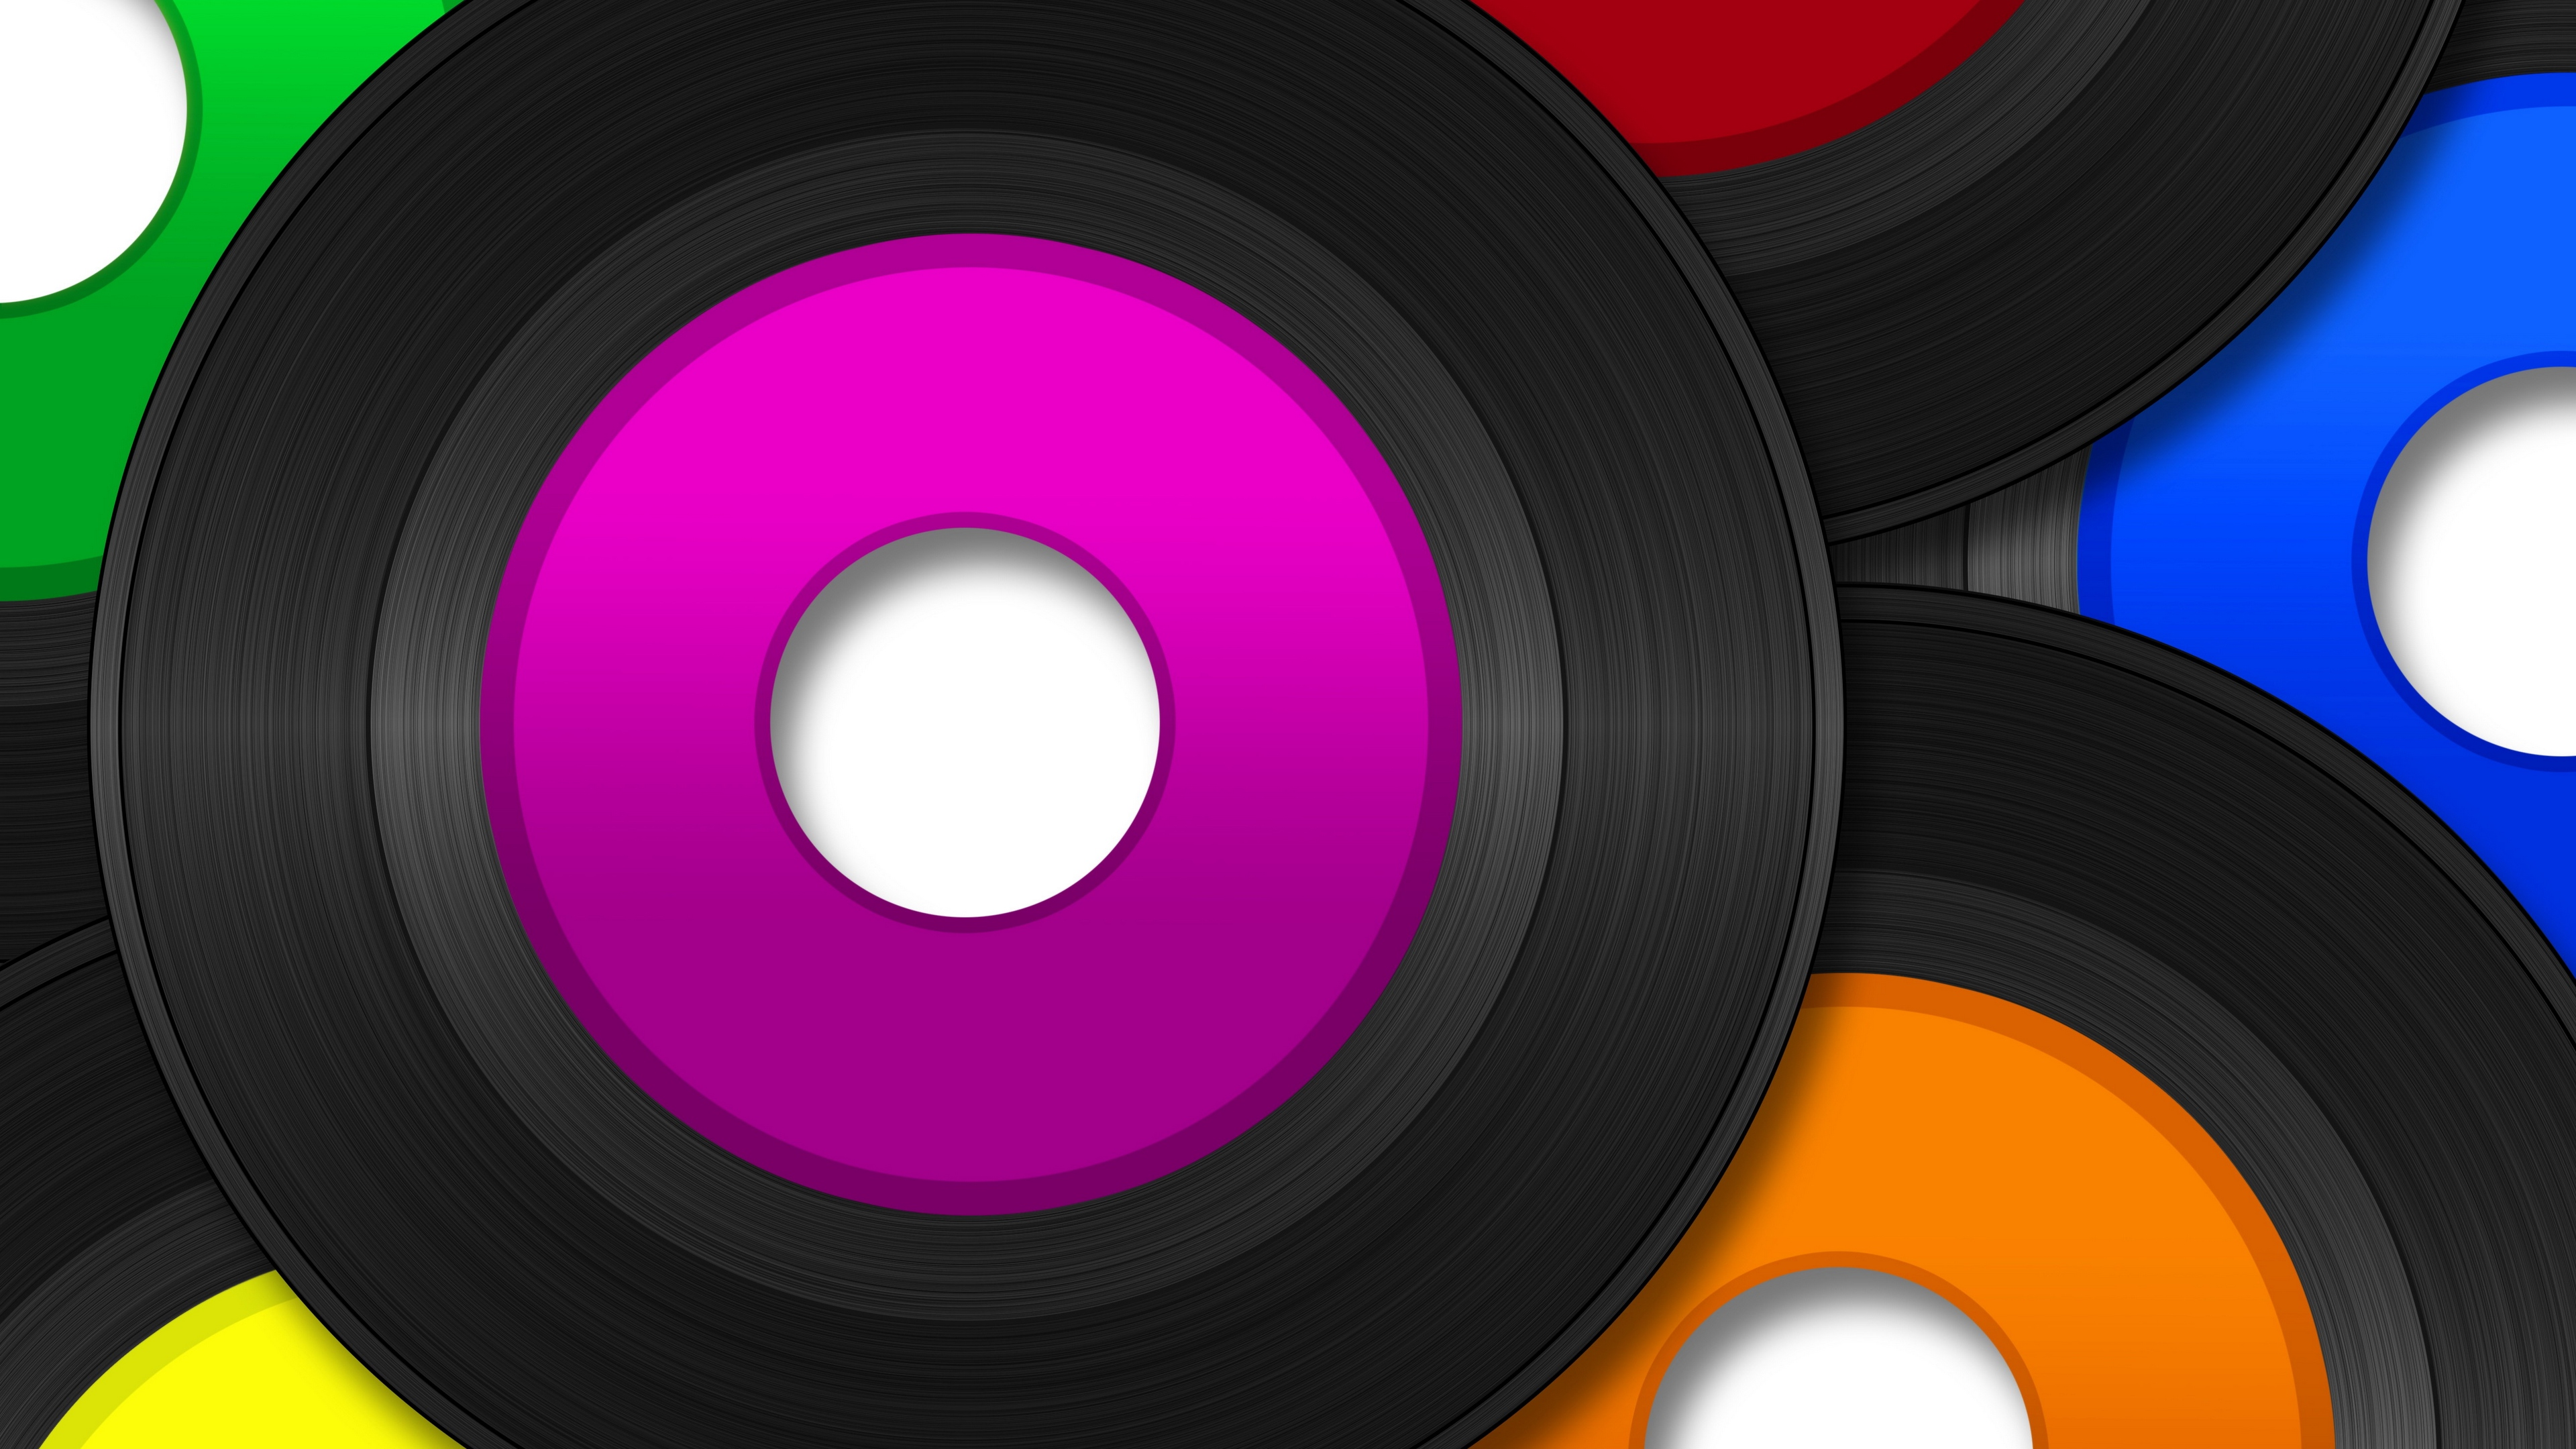 Download wallpaper 3840x2160 vinyl record music vector heap 4k 3840x2160